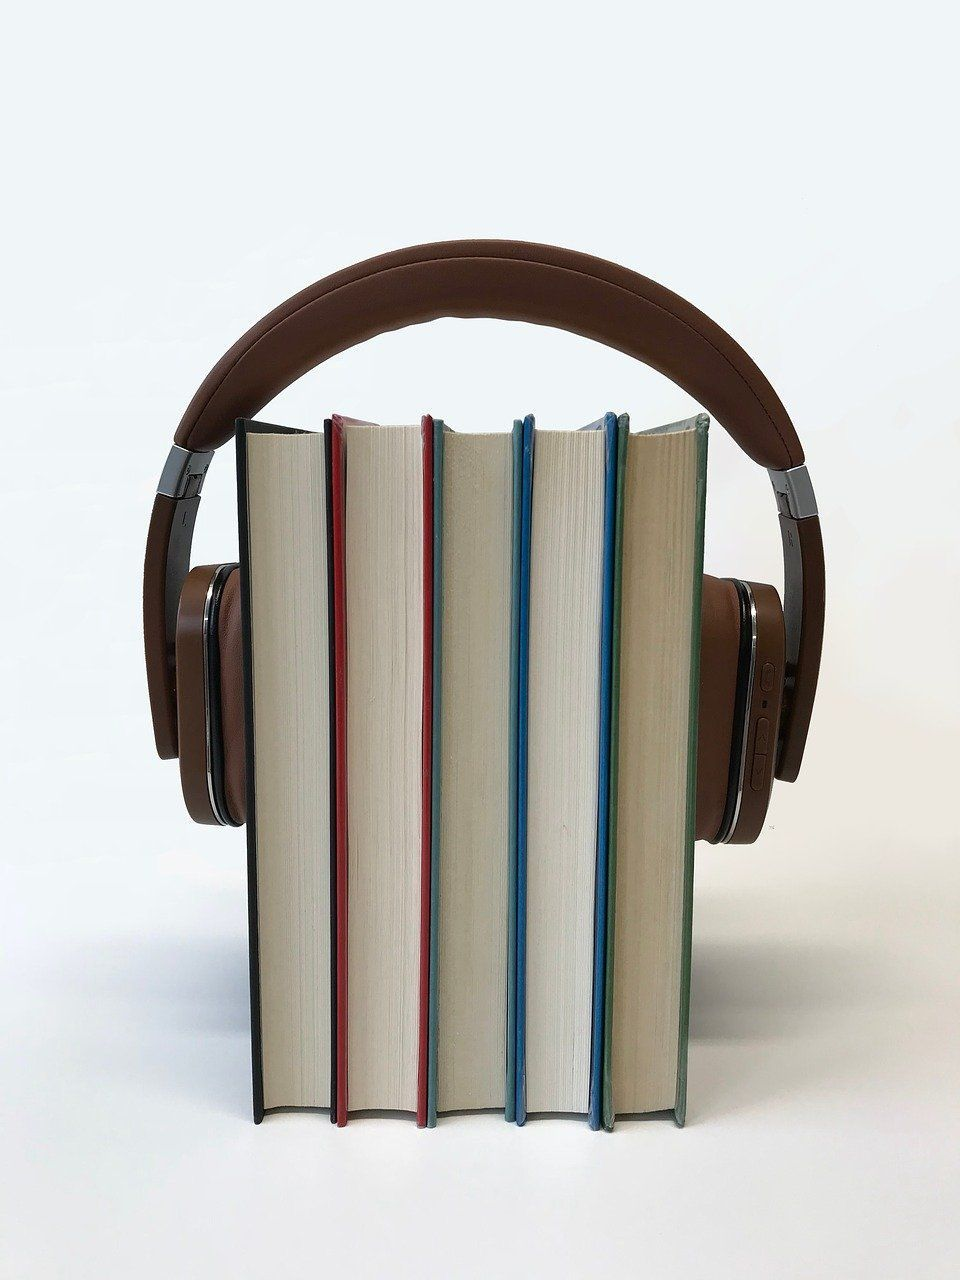 /my-mother-lost-her-vision-so-i-made-african-books-into-engaging-audiobooks-ktcu37m0 feature image